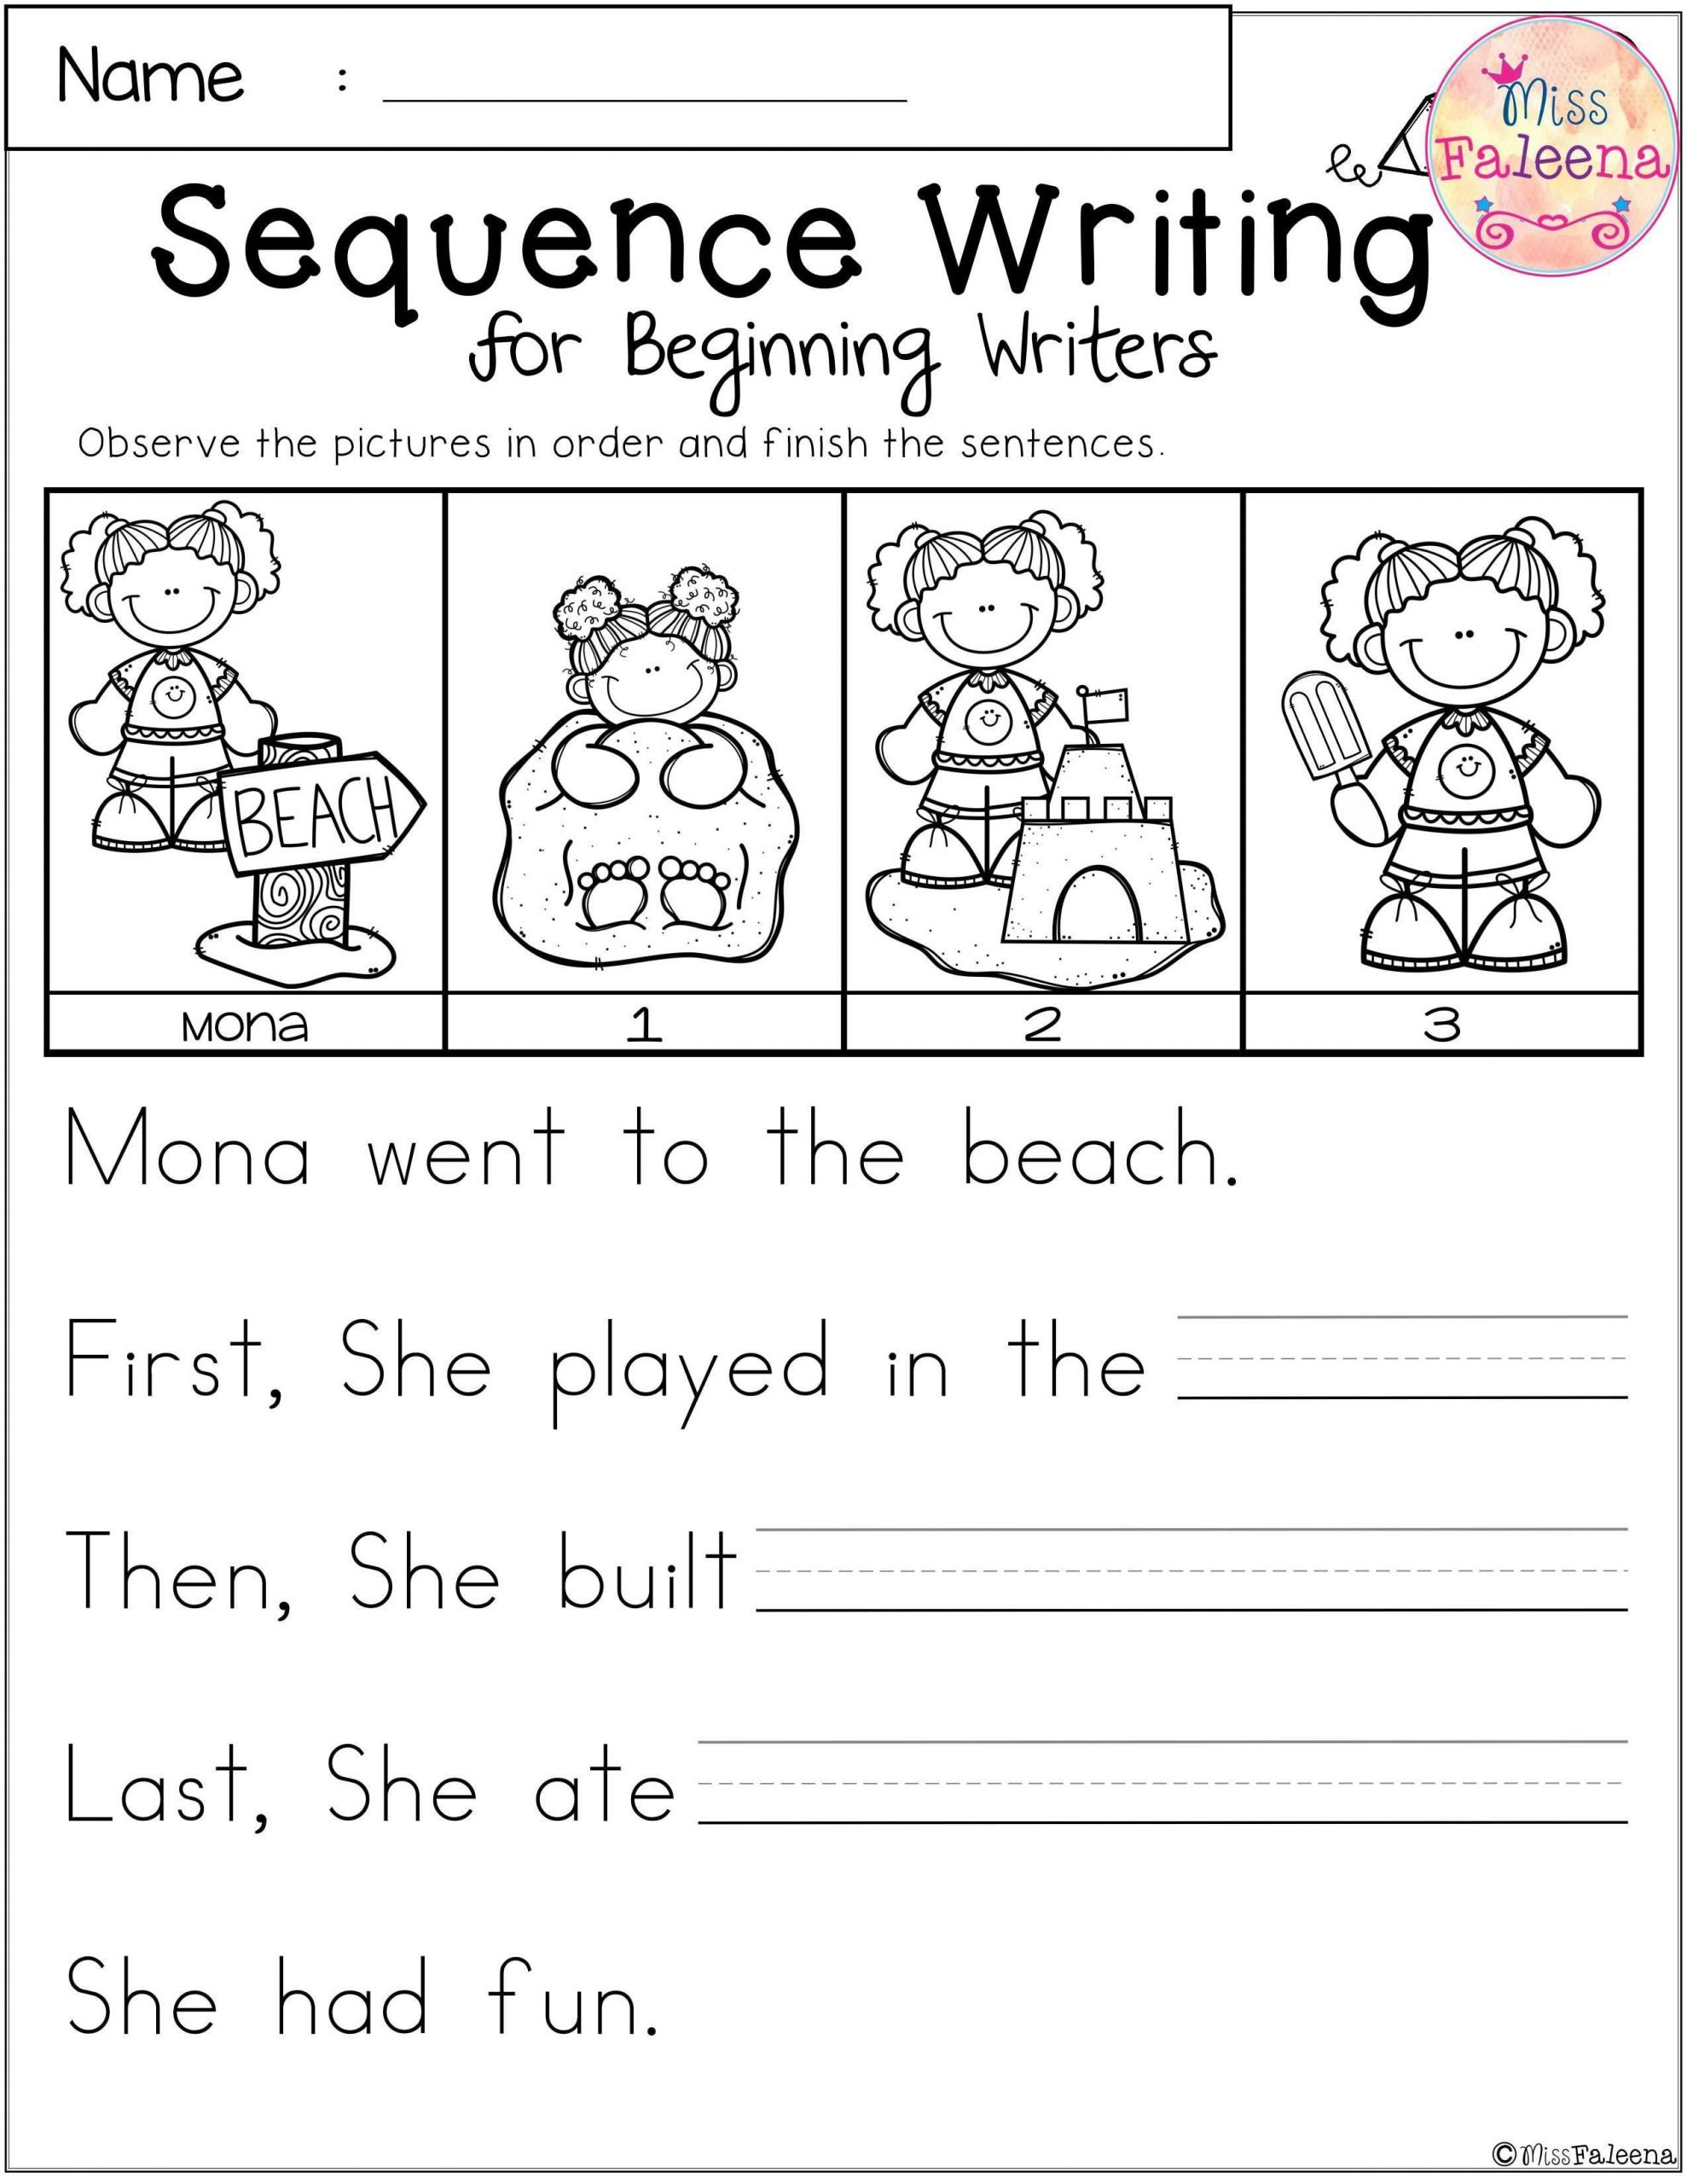 Sequence Worksheets for Kindergarten Free Sequence Writing for Beginning Writers